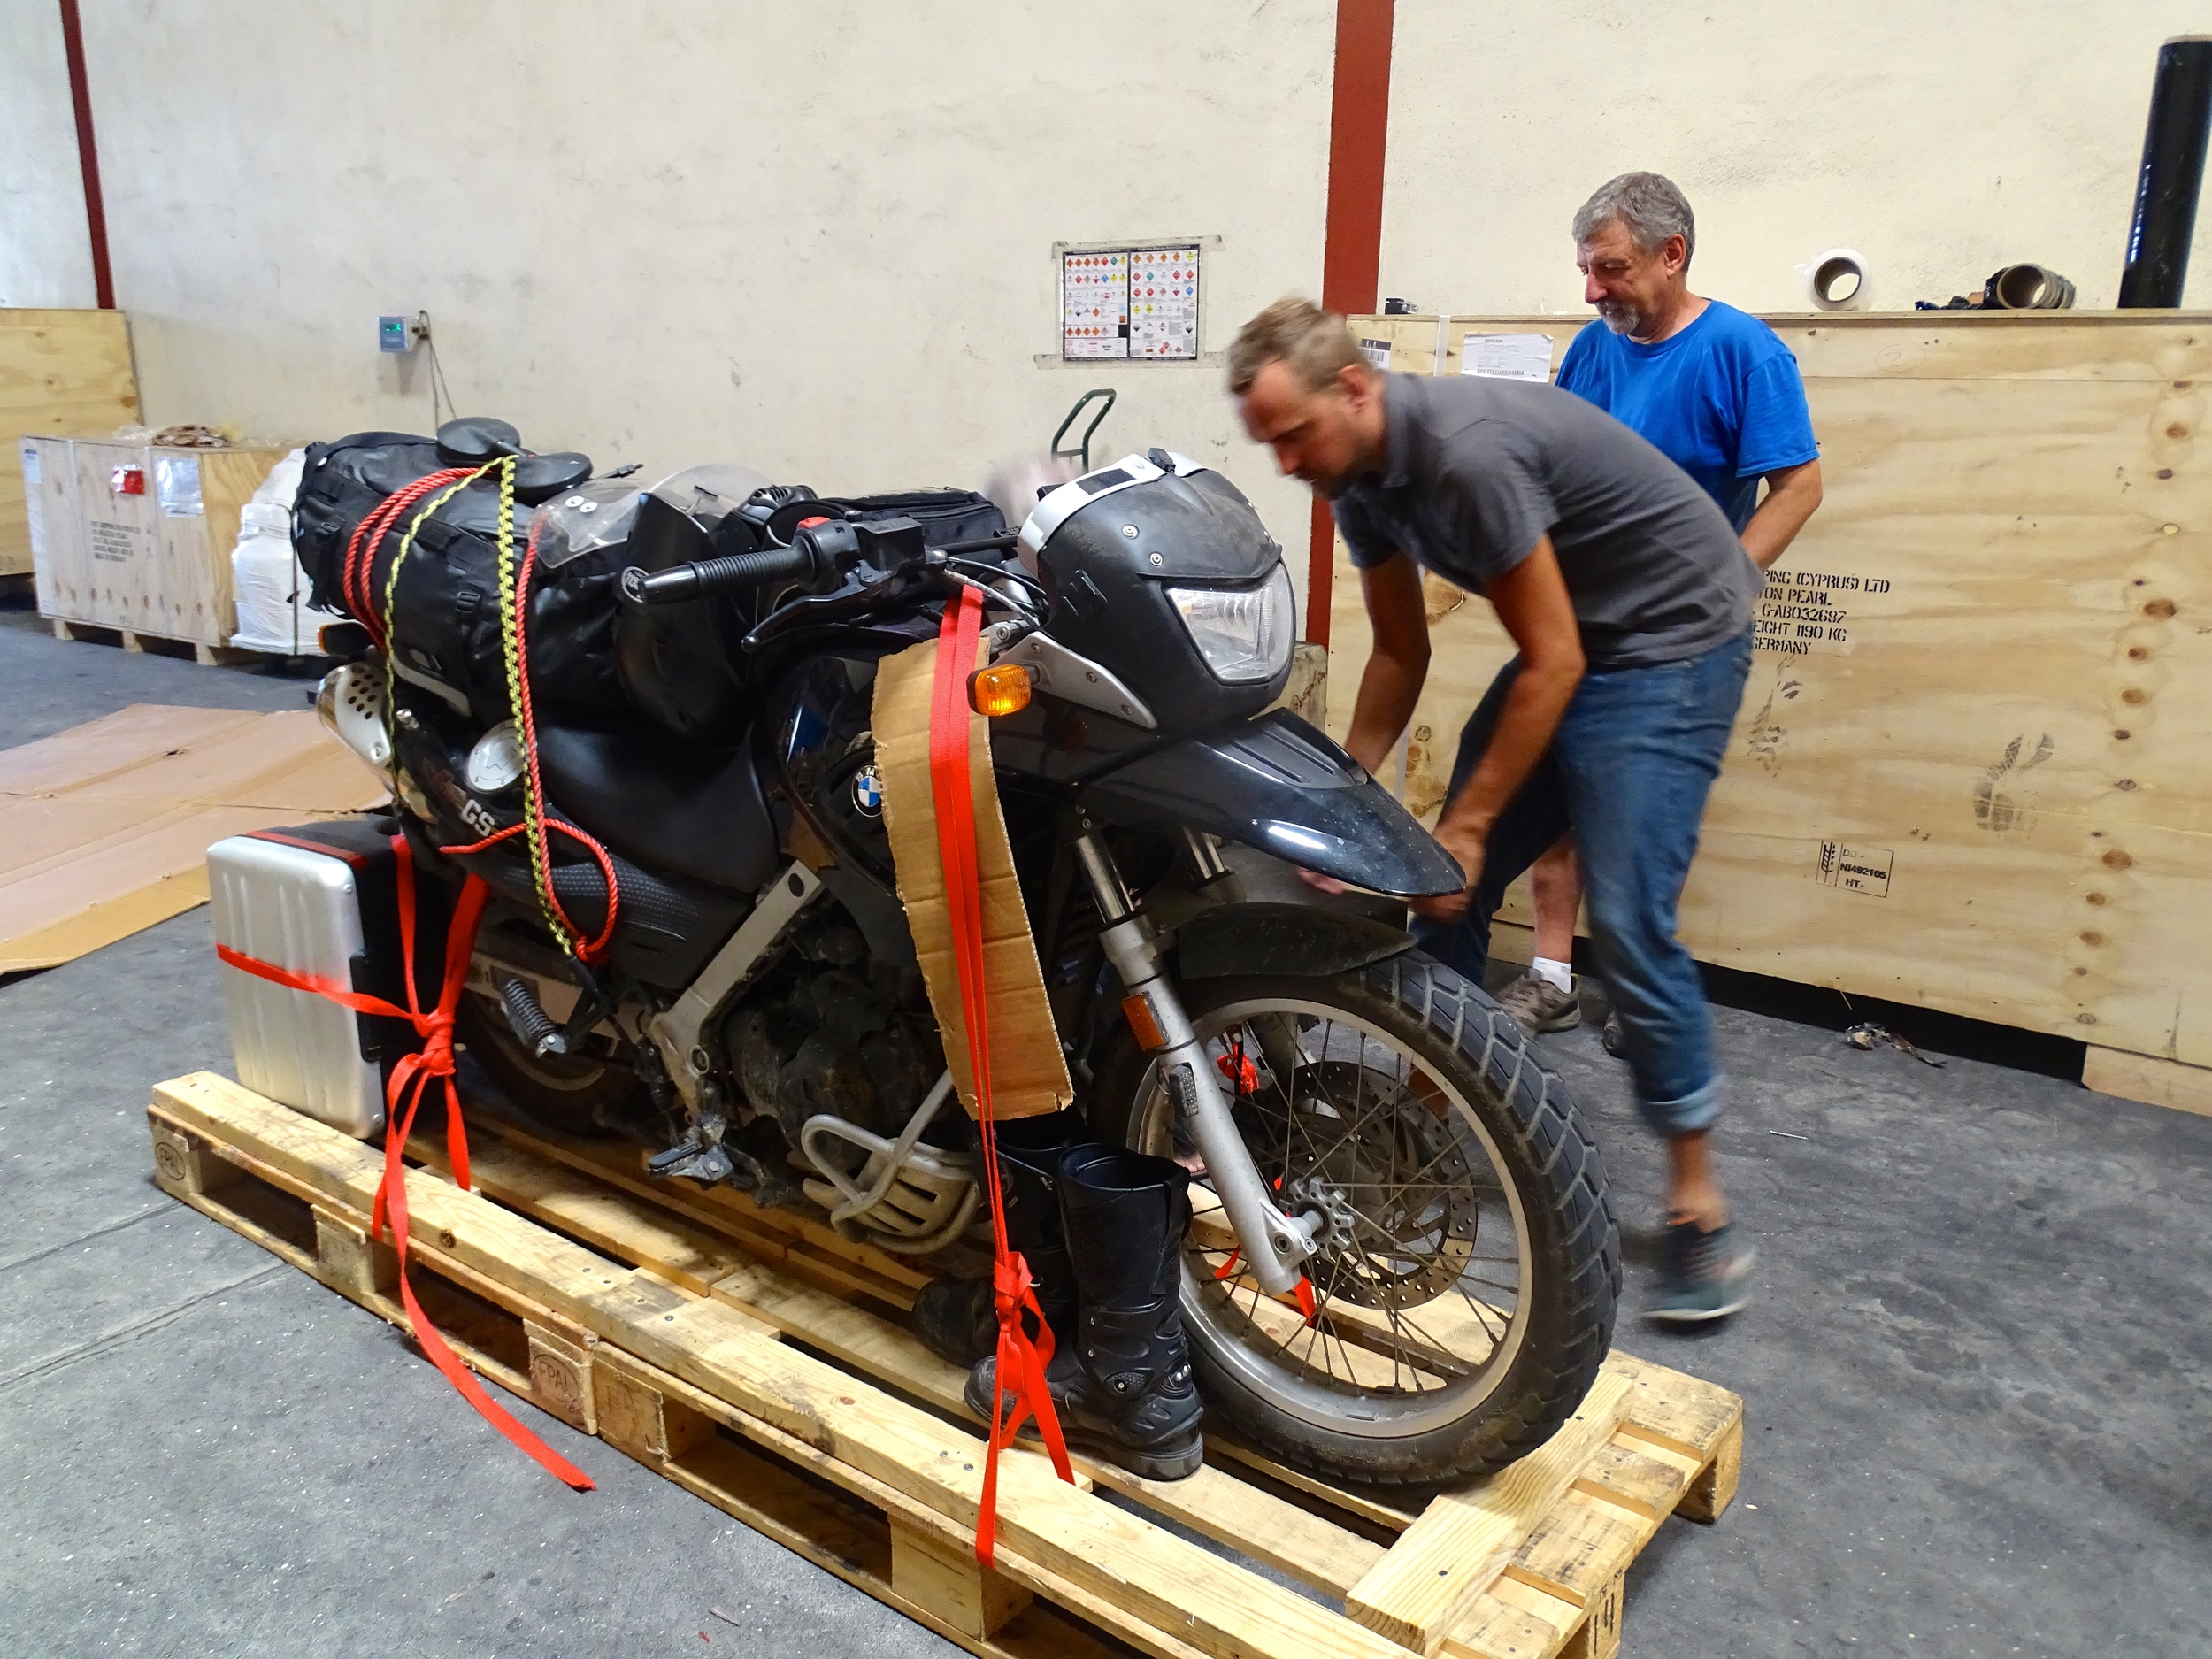 Ondrej had everything neatly arranged on the pallet around the bike.